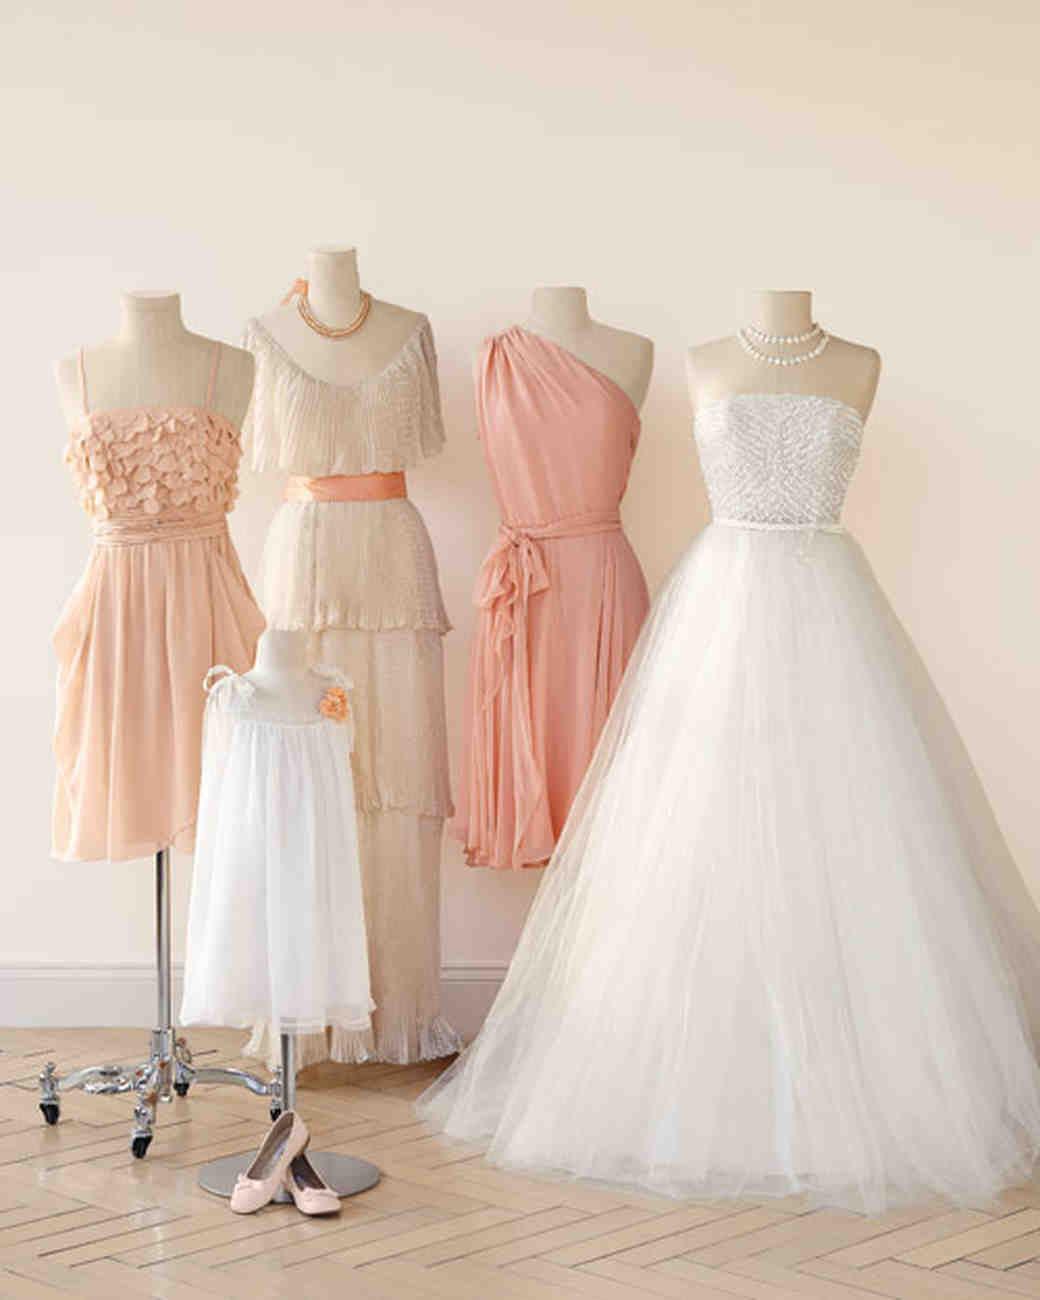 Peaches And Cream Is A Wedding Color Combination That Gloriously Memorable